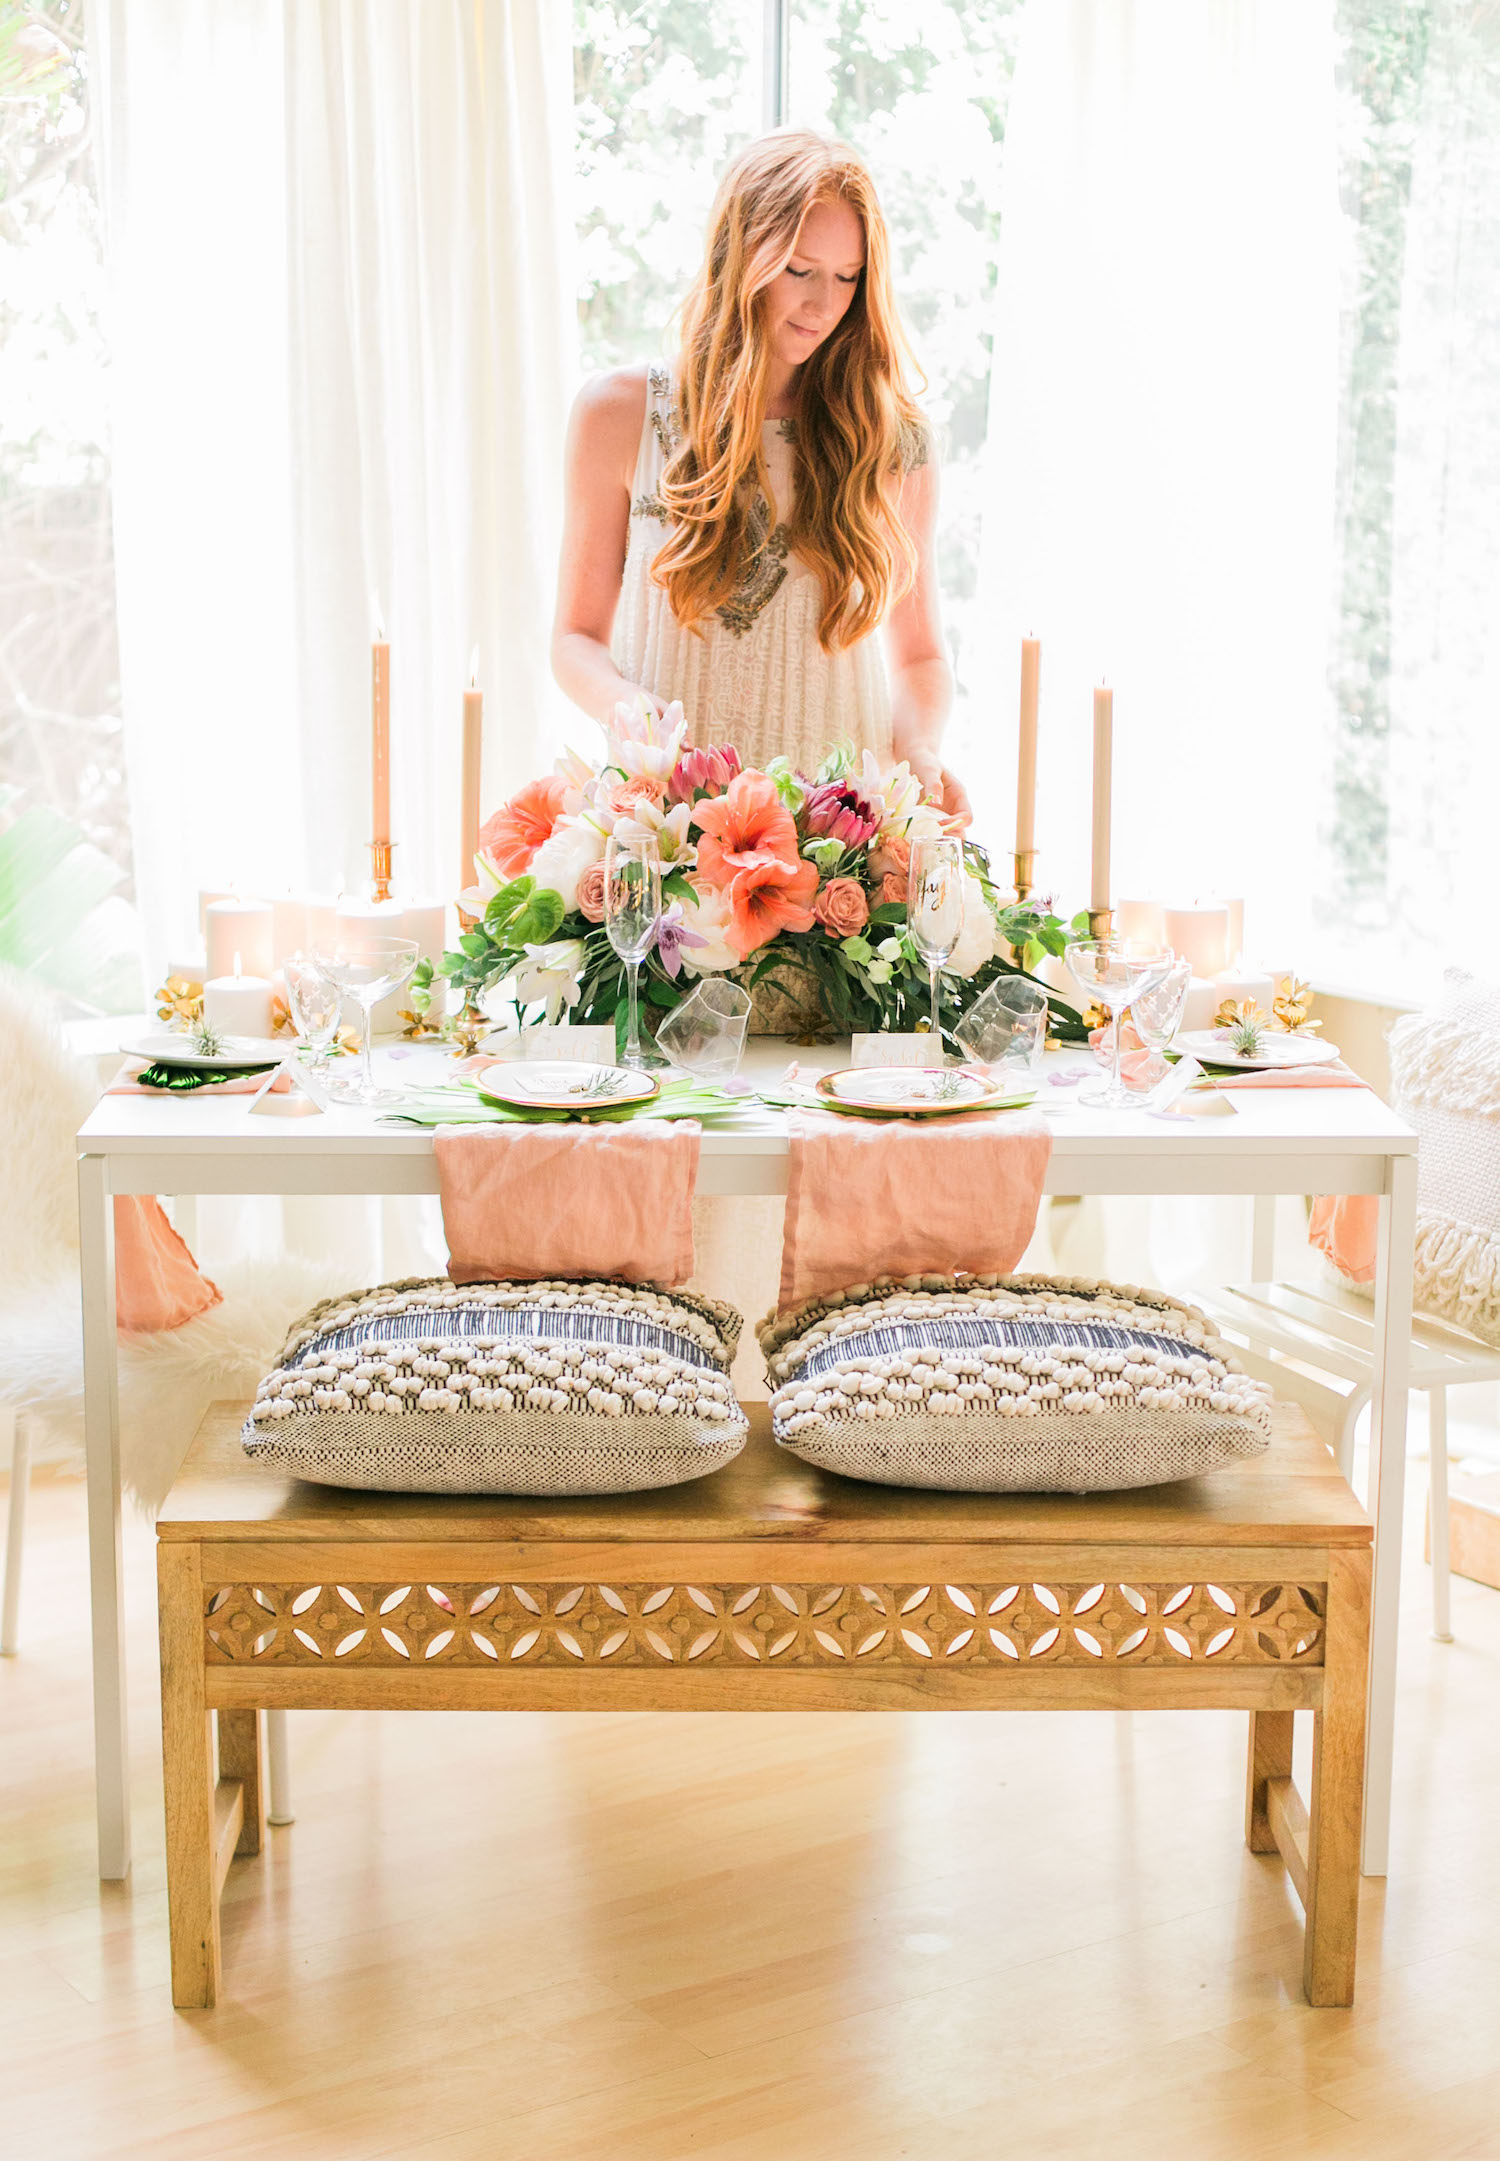 How to host a tropical inspired rehearsal dinner at home | A Fabulous Fete